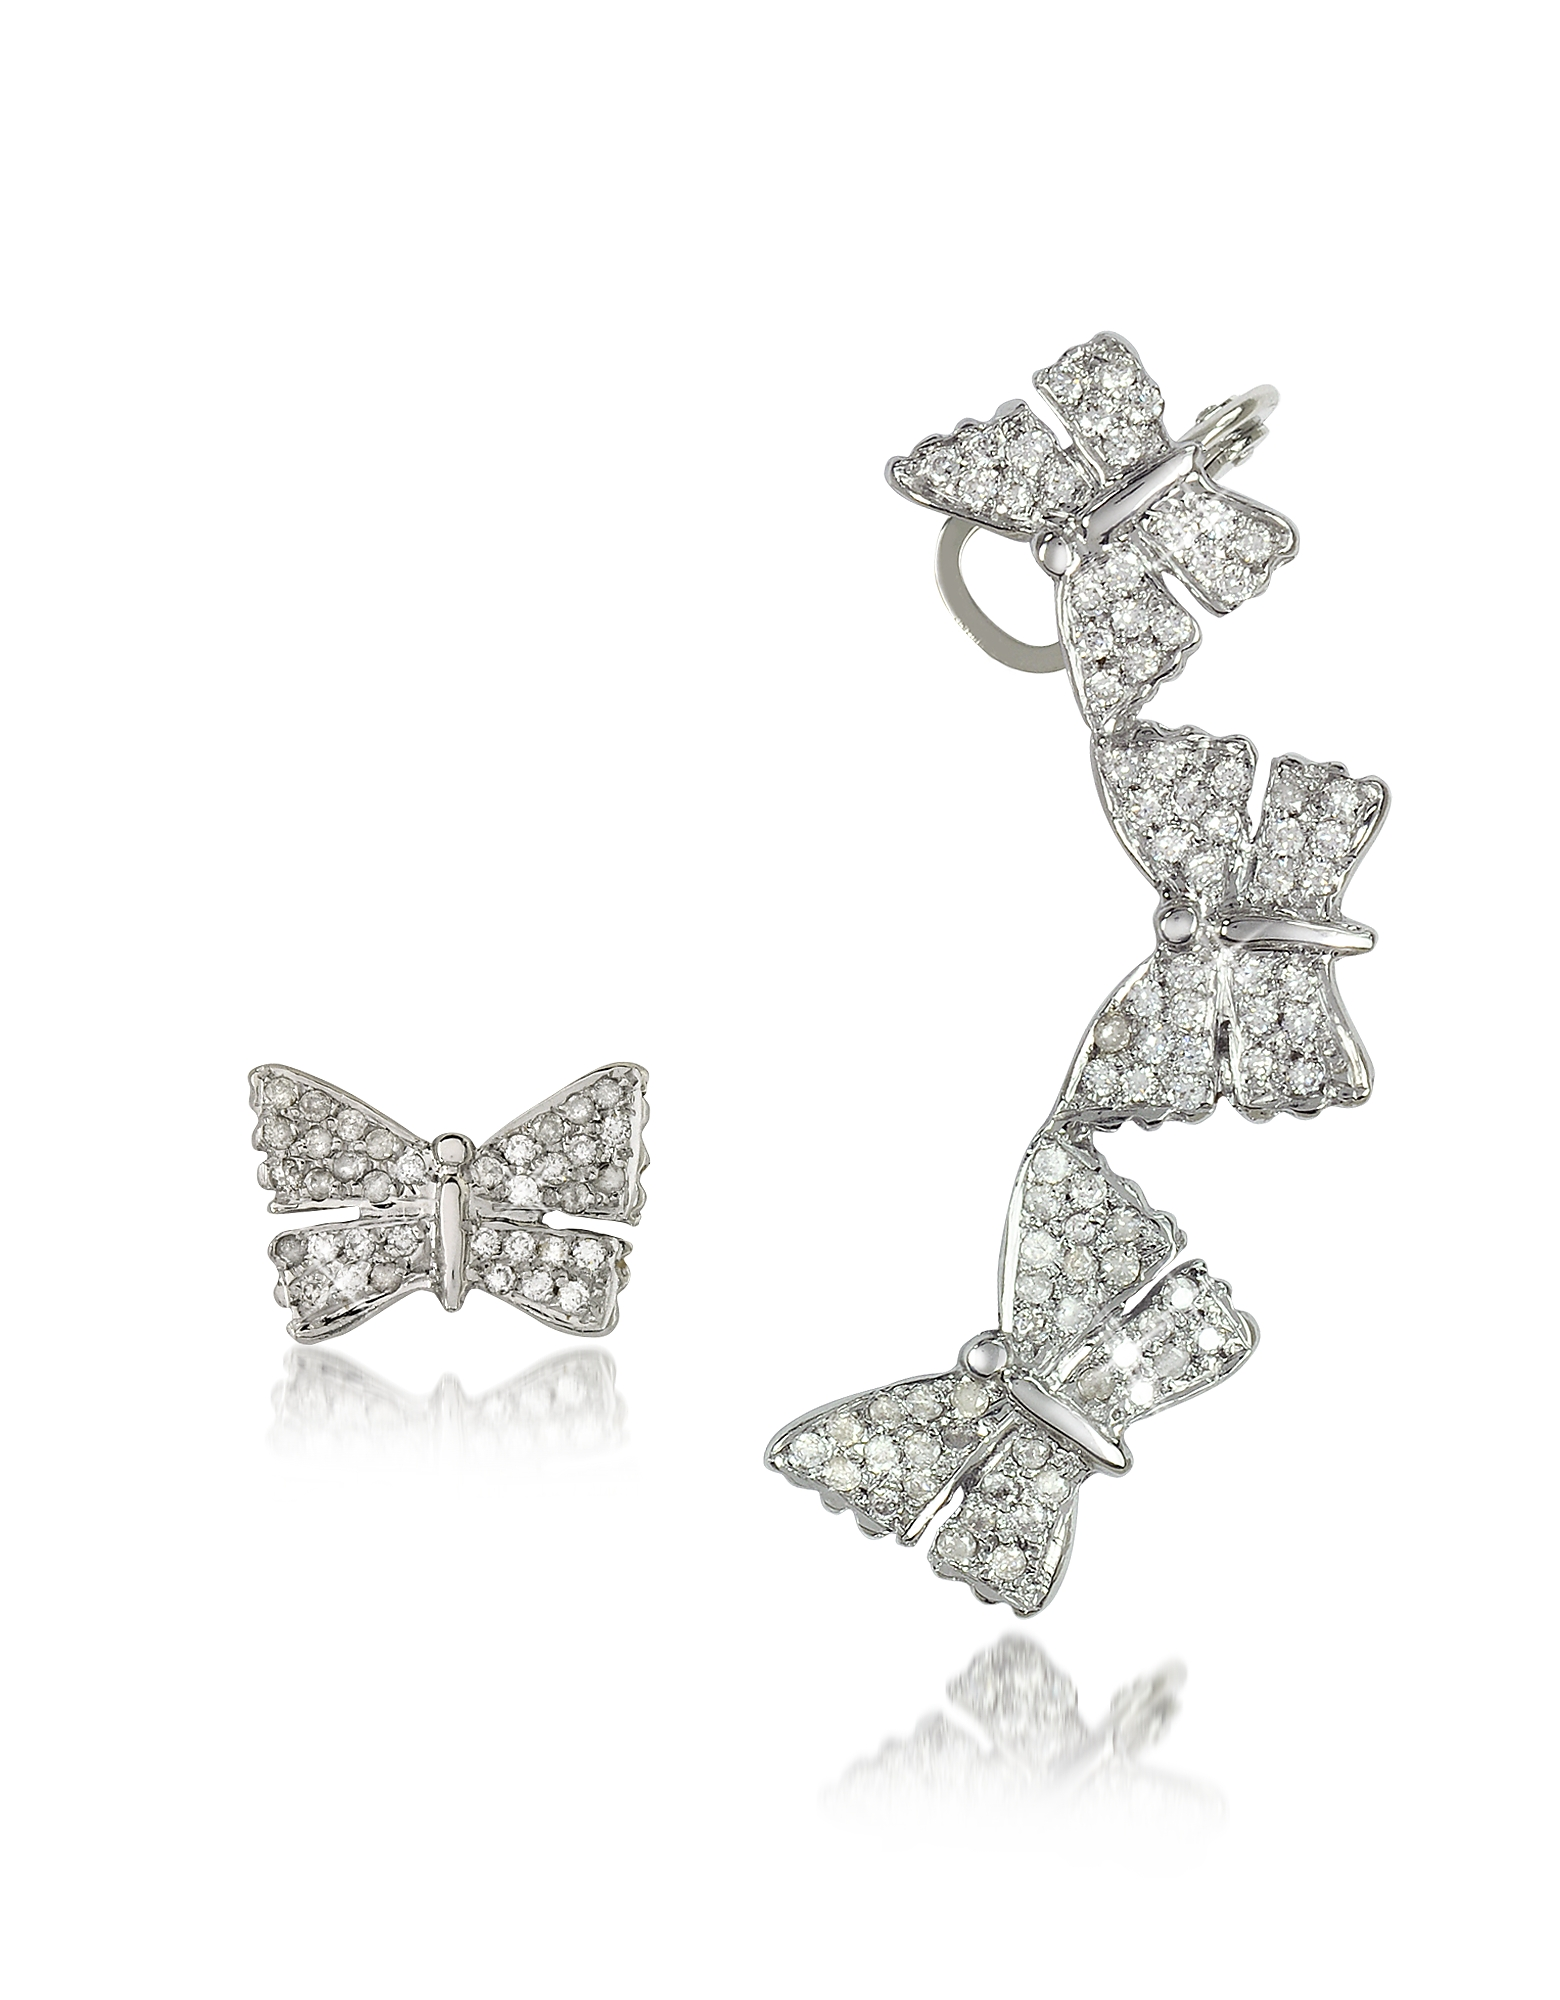 Bernard Delettrez Earrings, Butterflies White Gold Earrings w/Diamonds